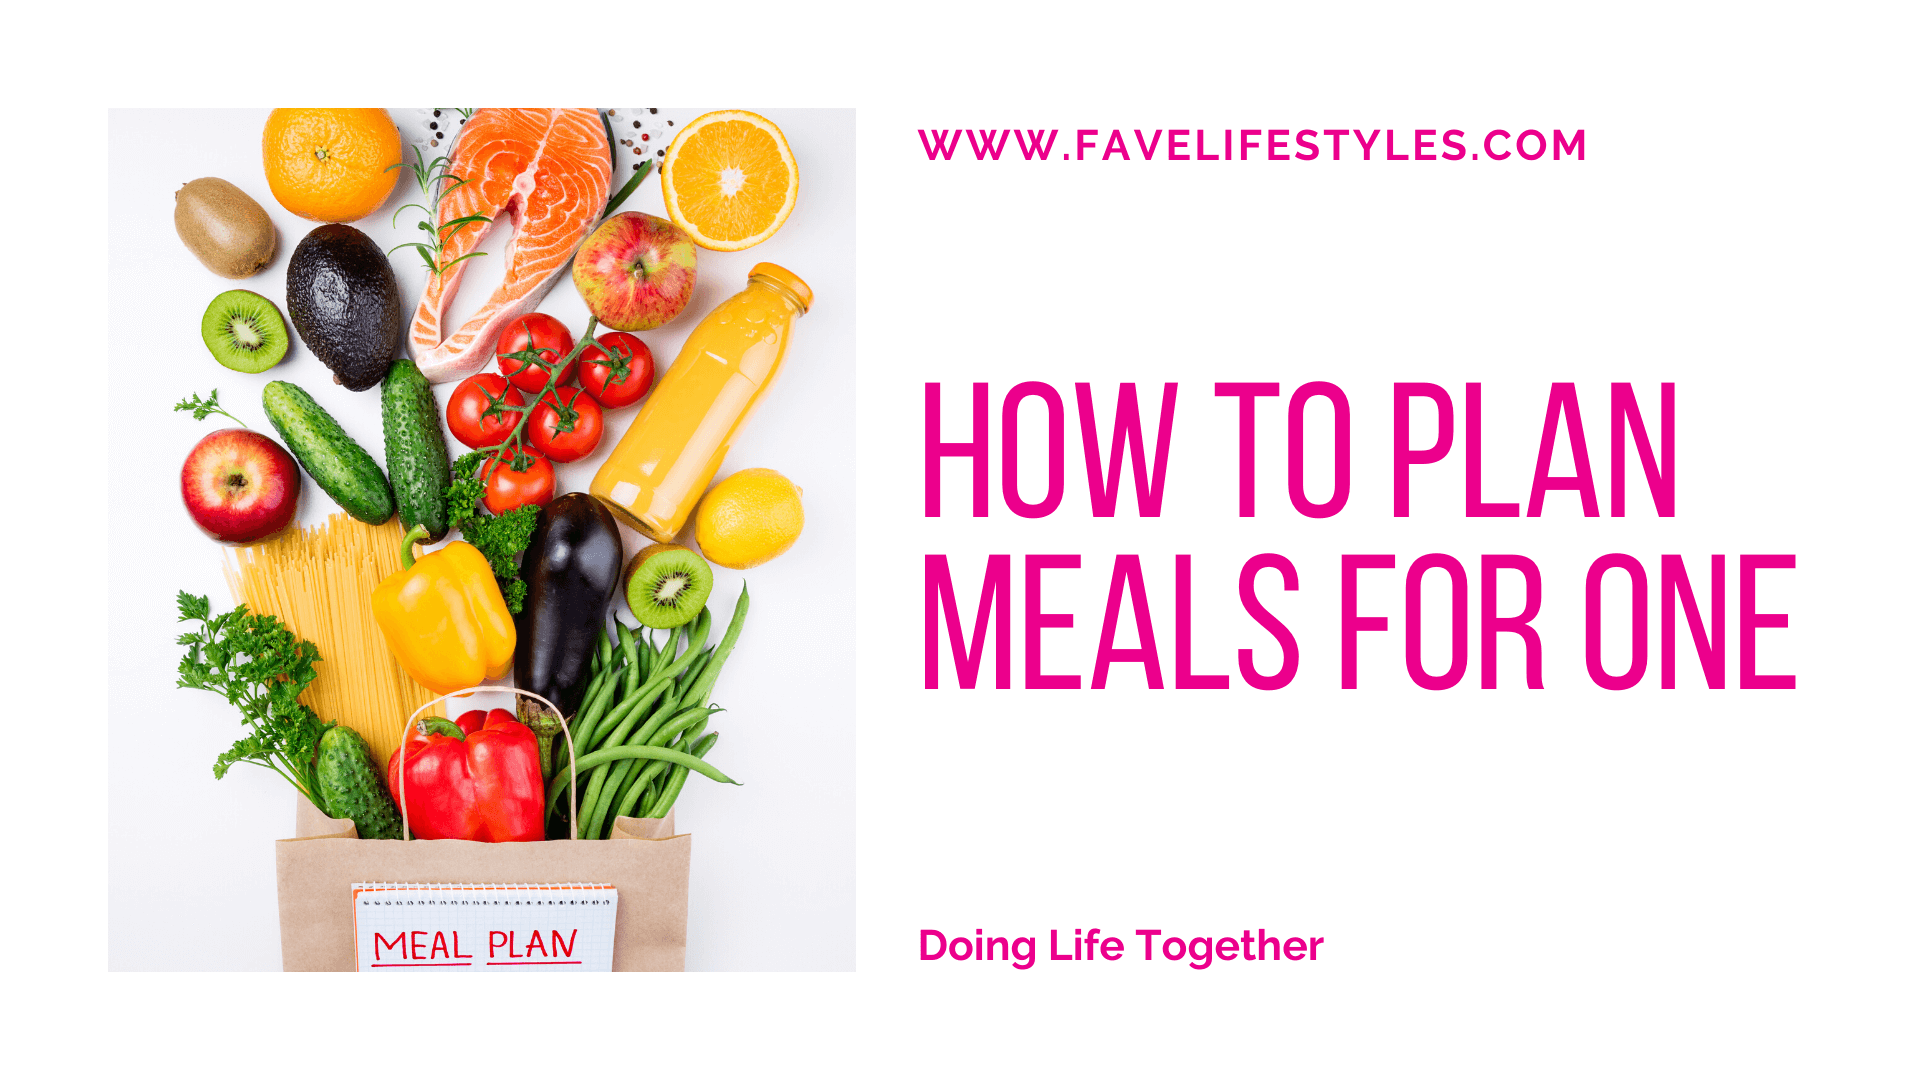 How to Plan Meals for One